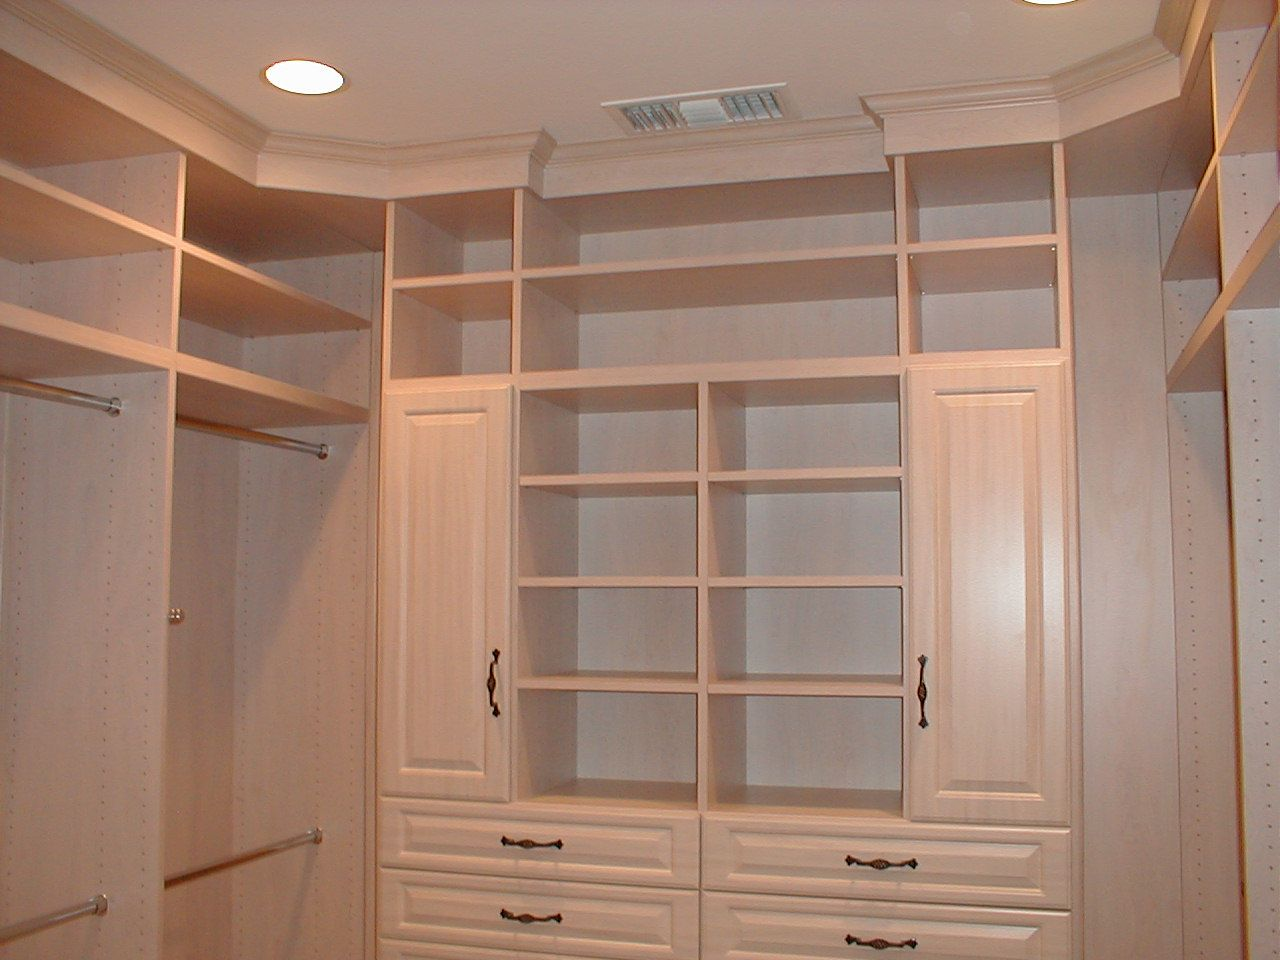 Custom closet design closet designs custom closet - Designs on wardrobe ...